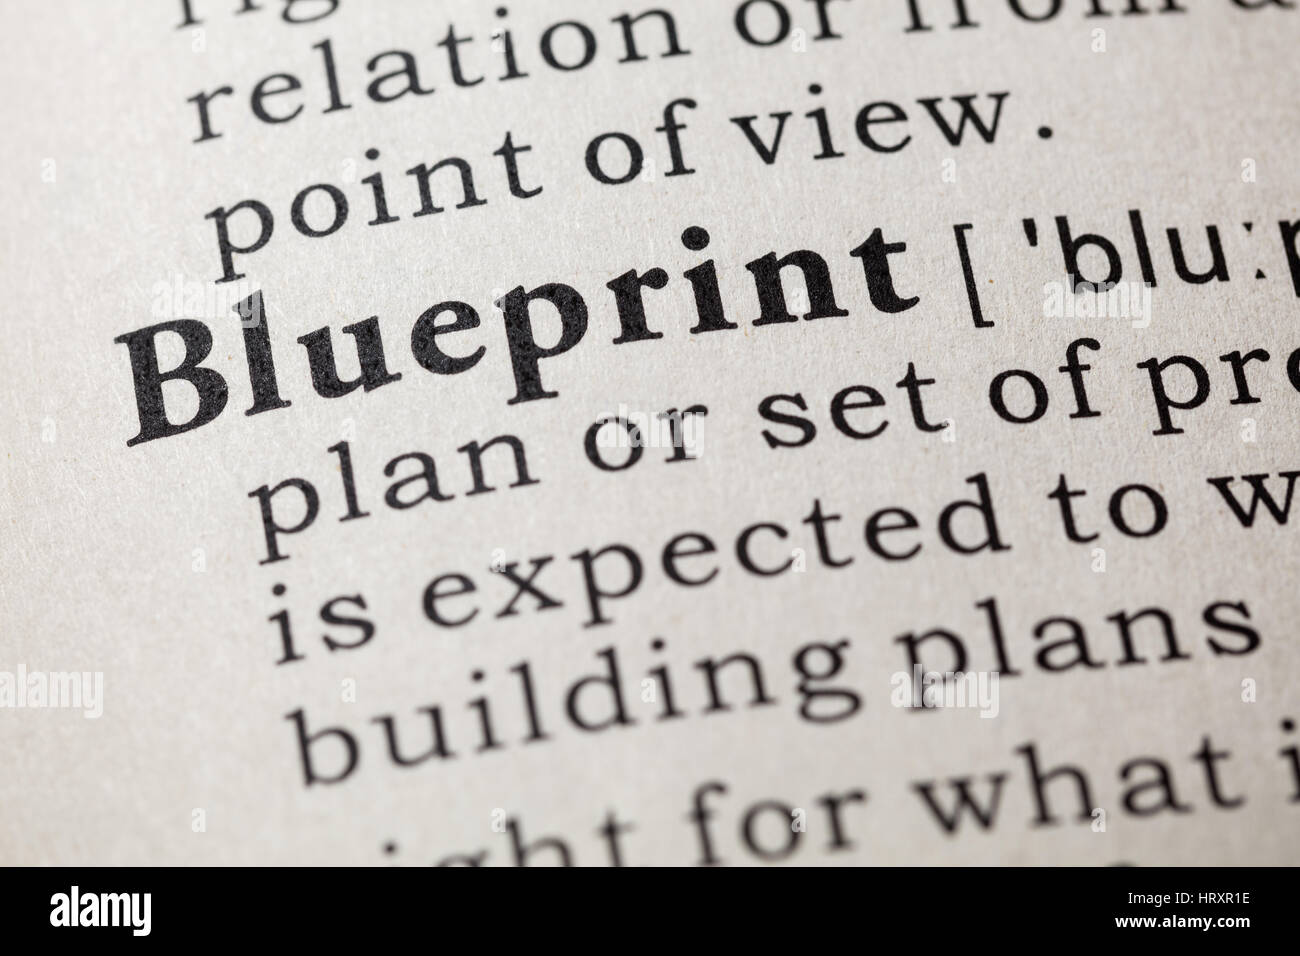 Fake dictionary dictionary definition of the word blueprint stock fake dictionary dictionary definition of the word blueprint including key descriptive words malvernweather Choice Image